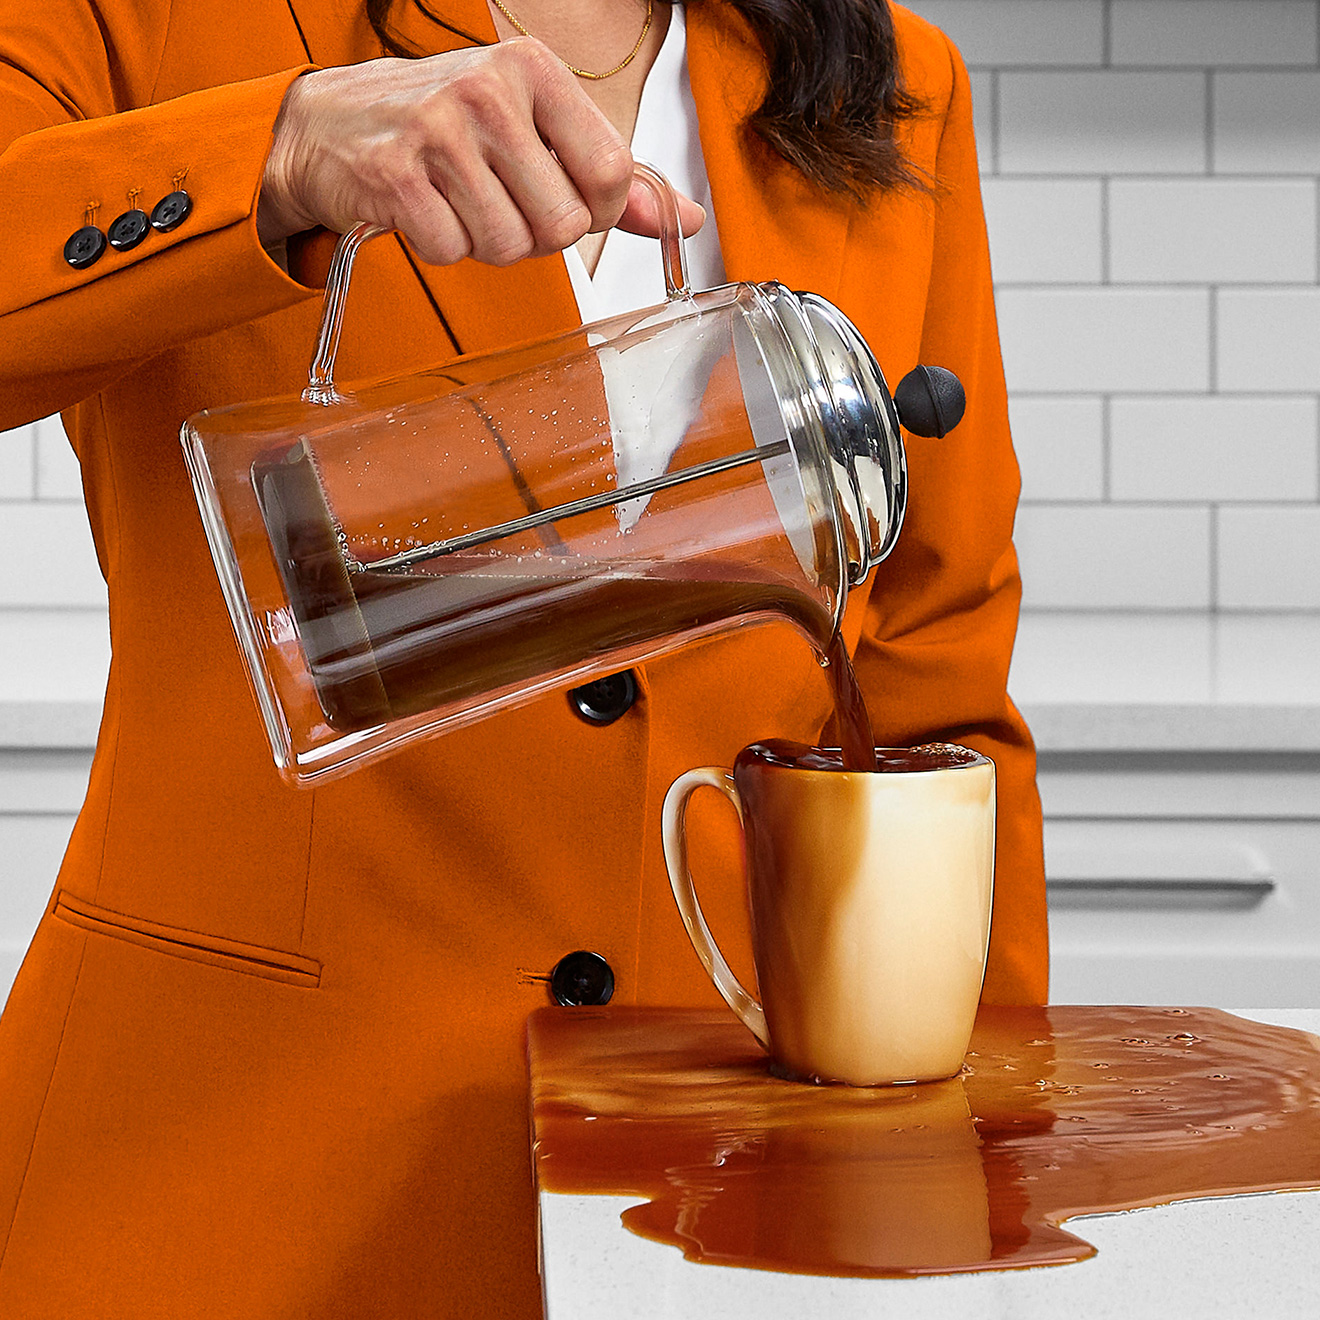 Woman in an orange suit pouring coffee into overflowing cup